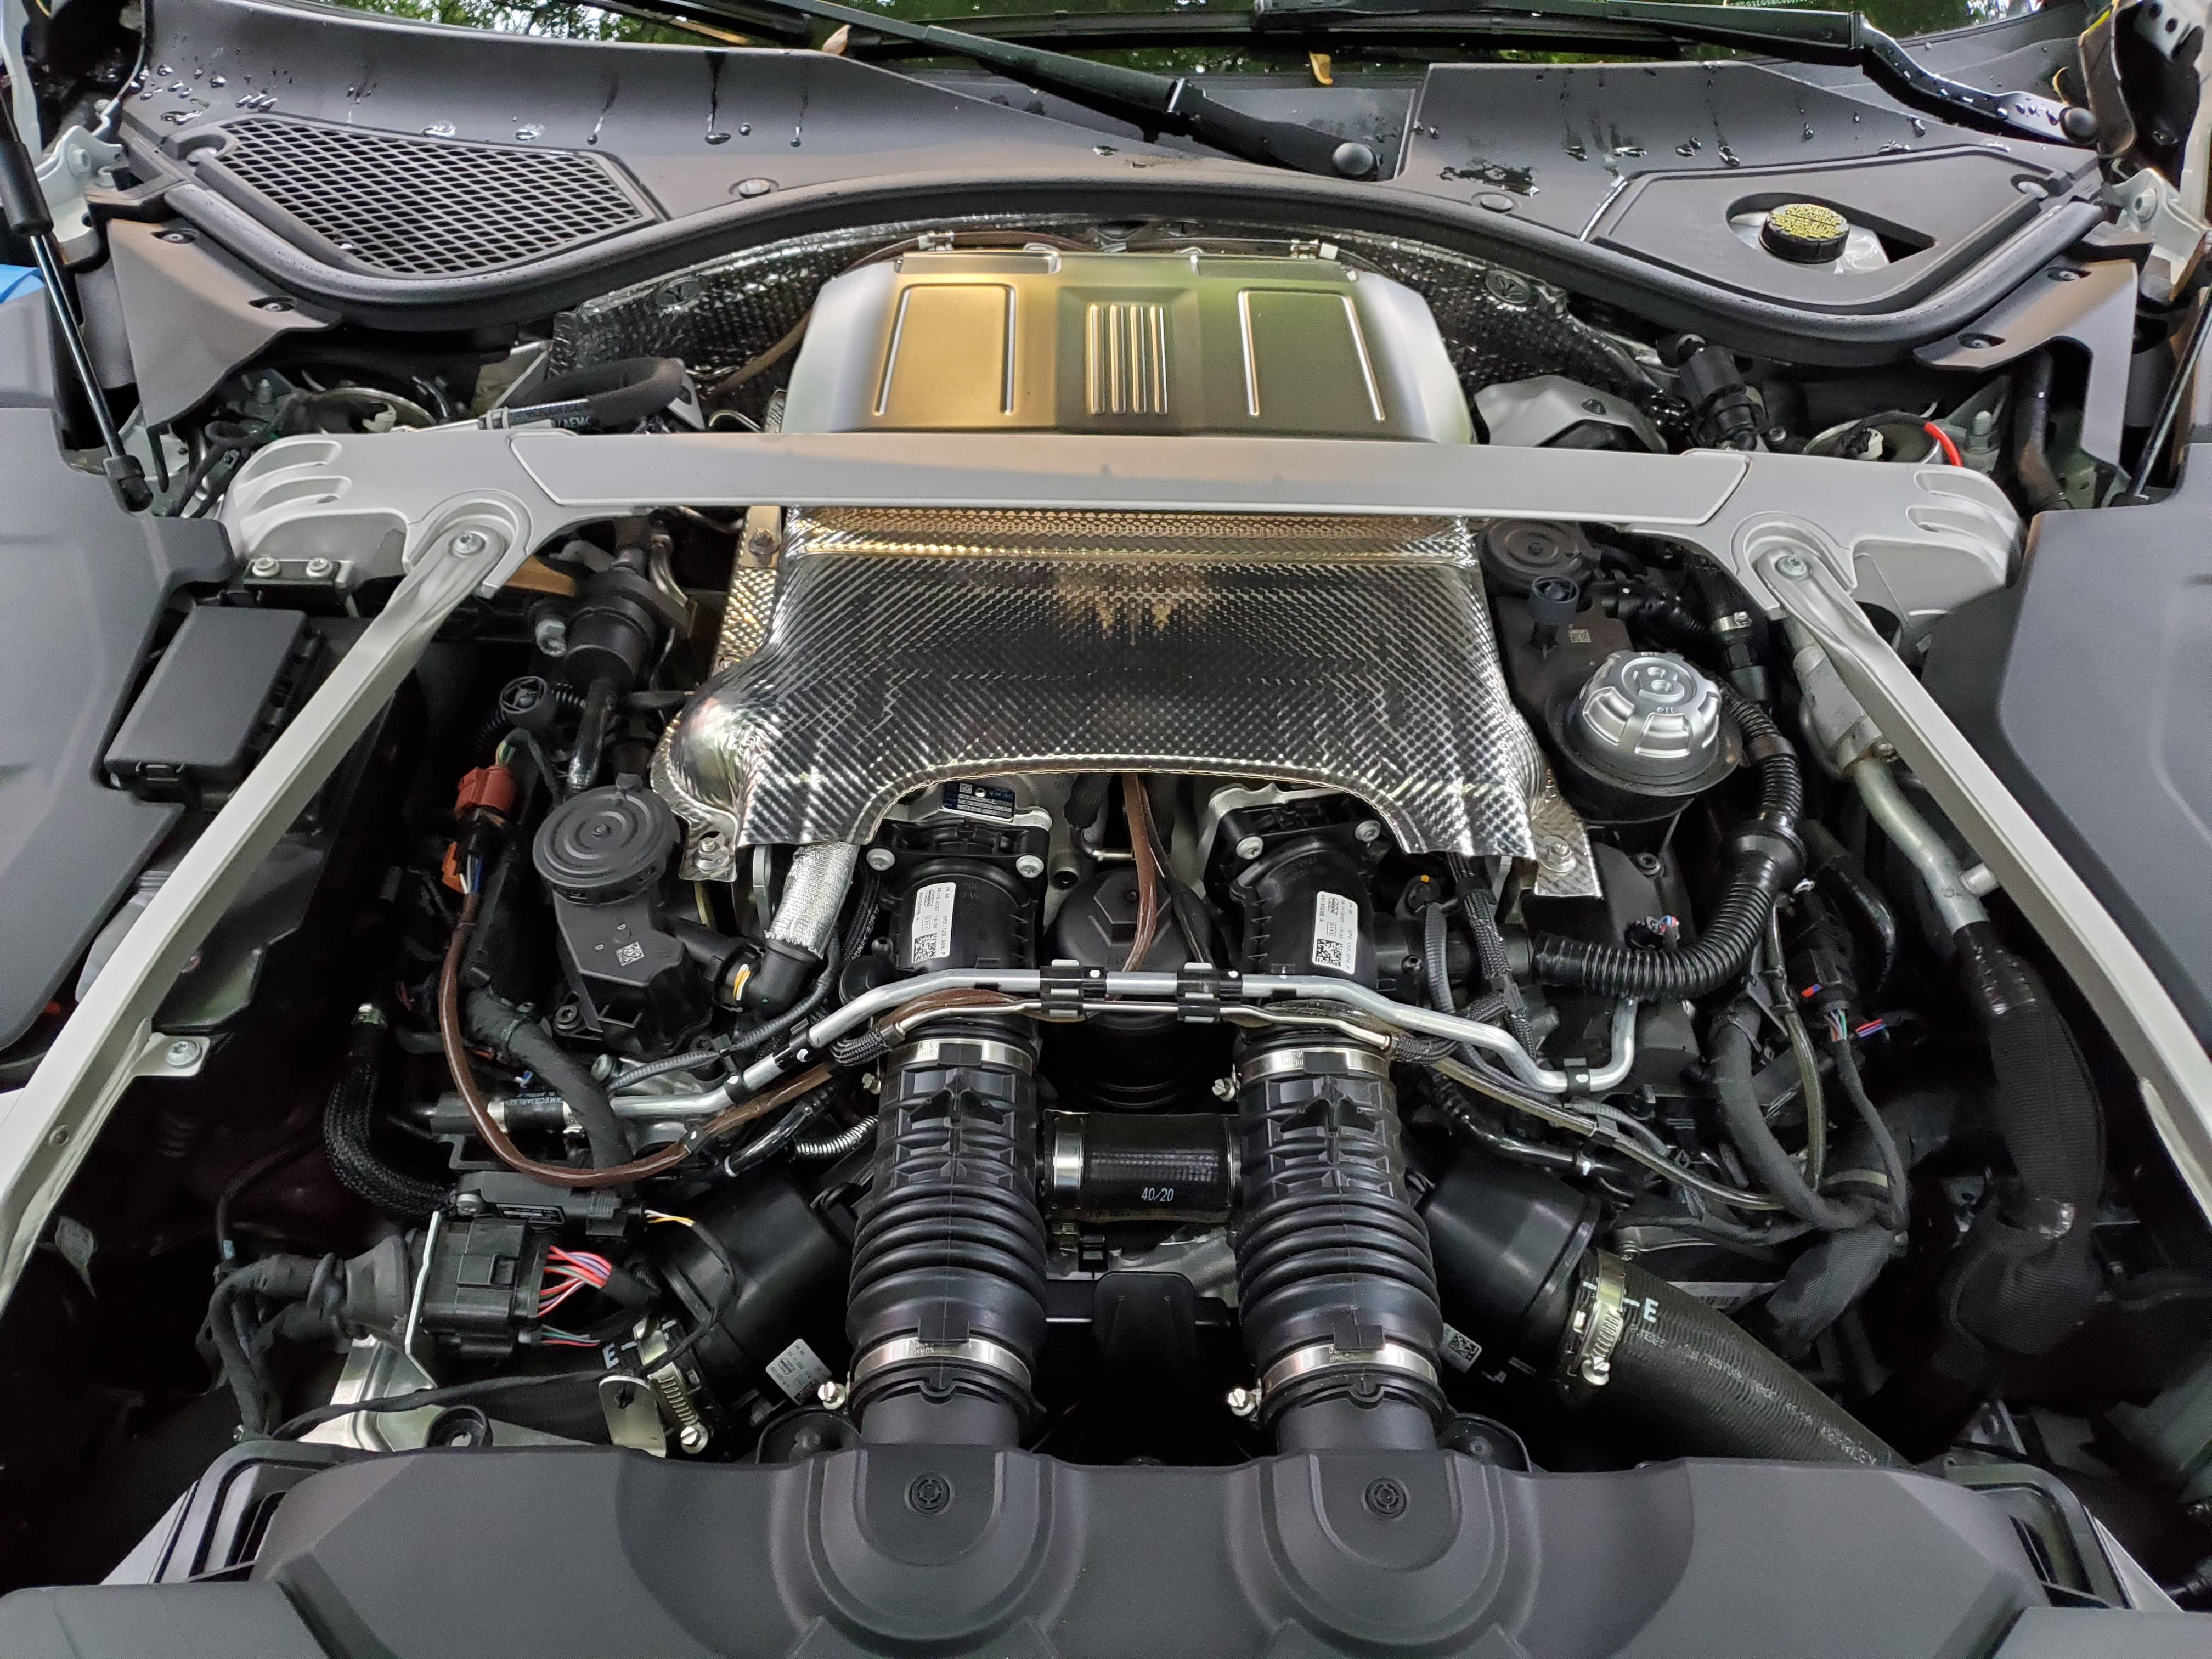 bentley GT V8 Engine without cover